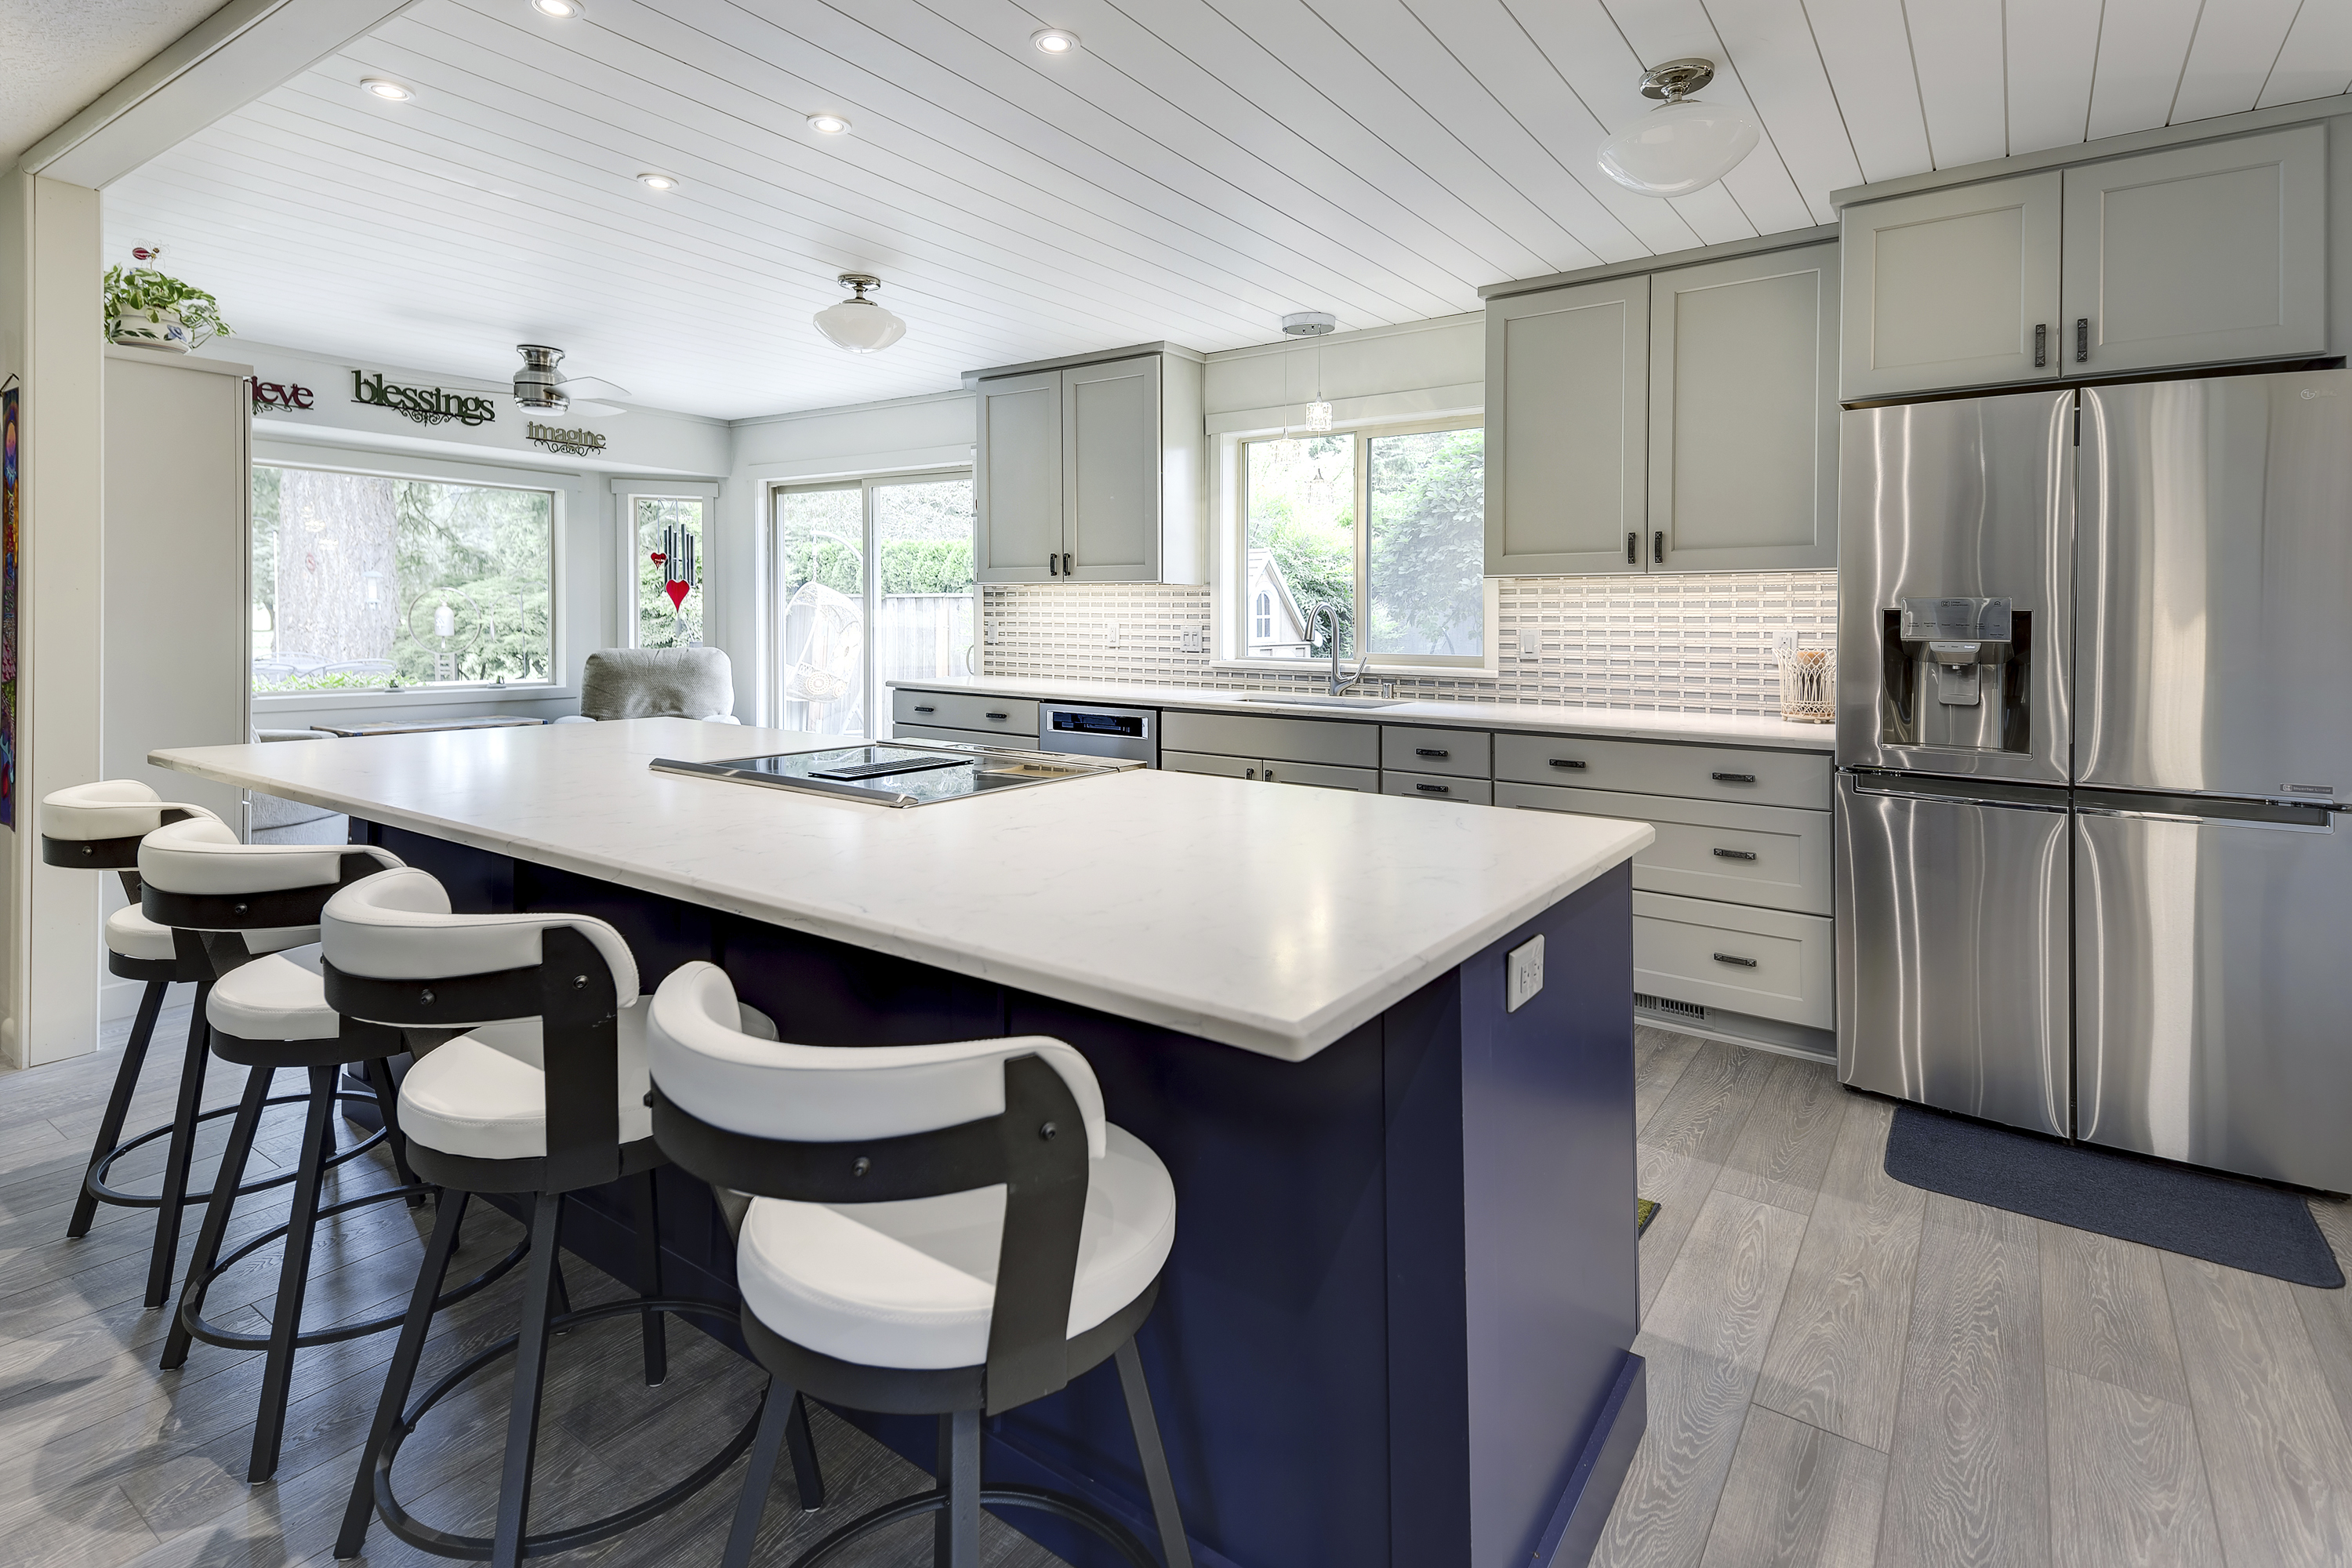 Ash Gray and Indigo  Kitchen Cabinets